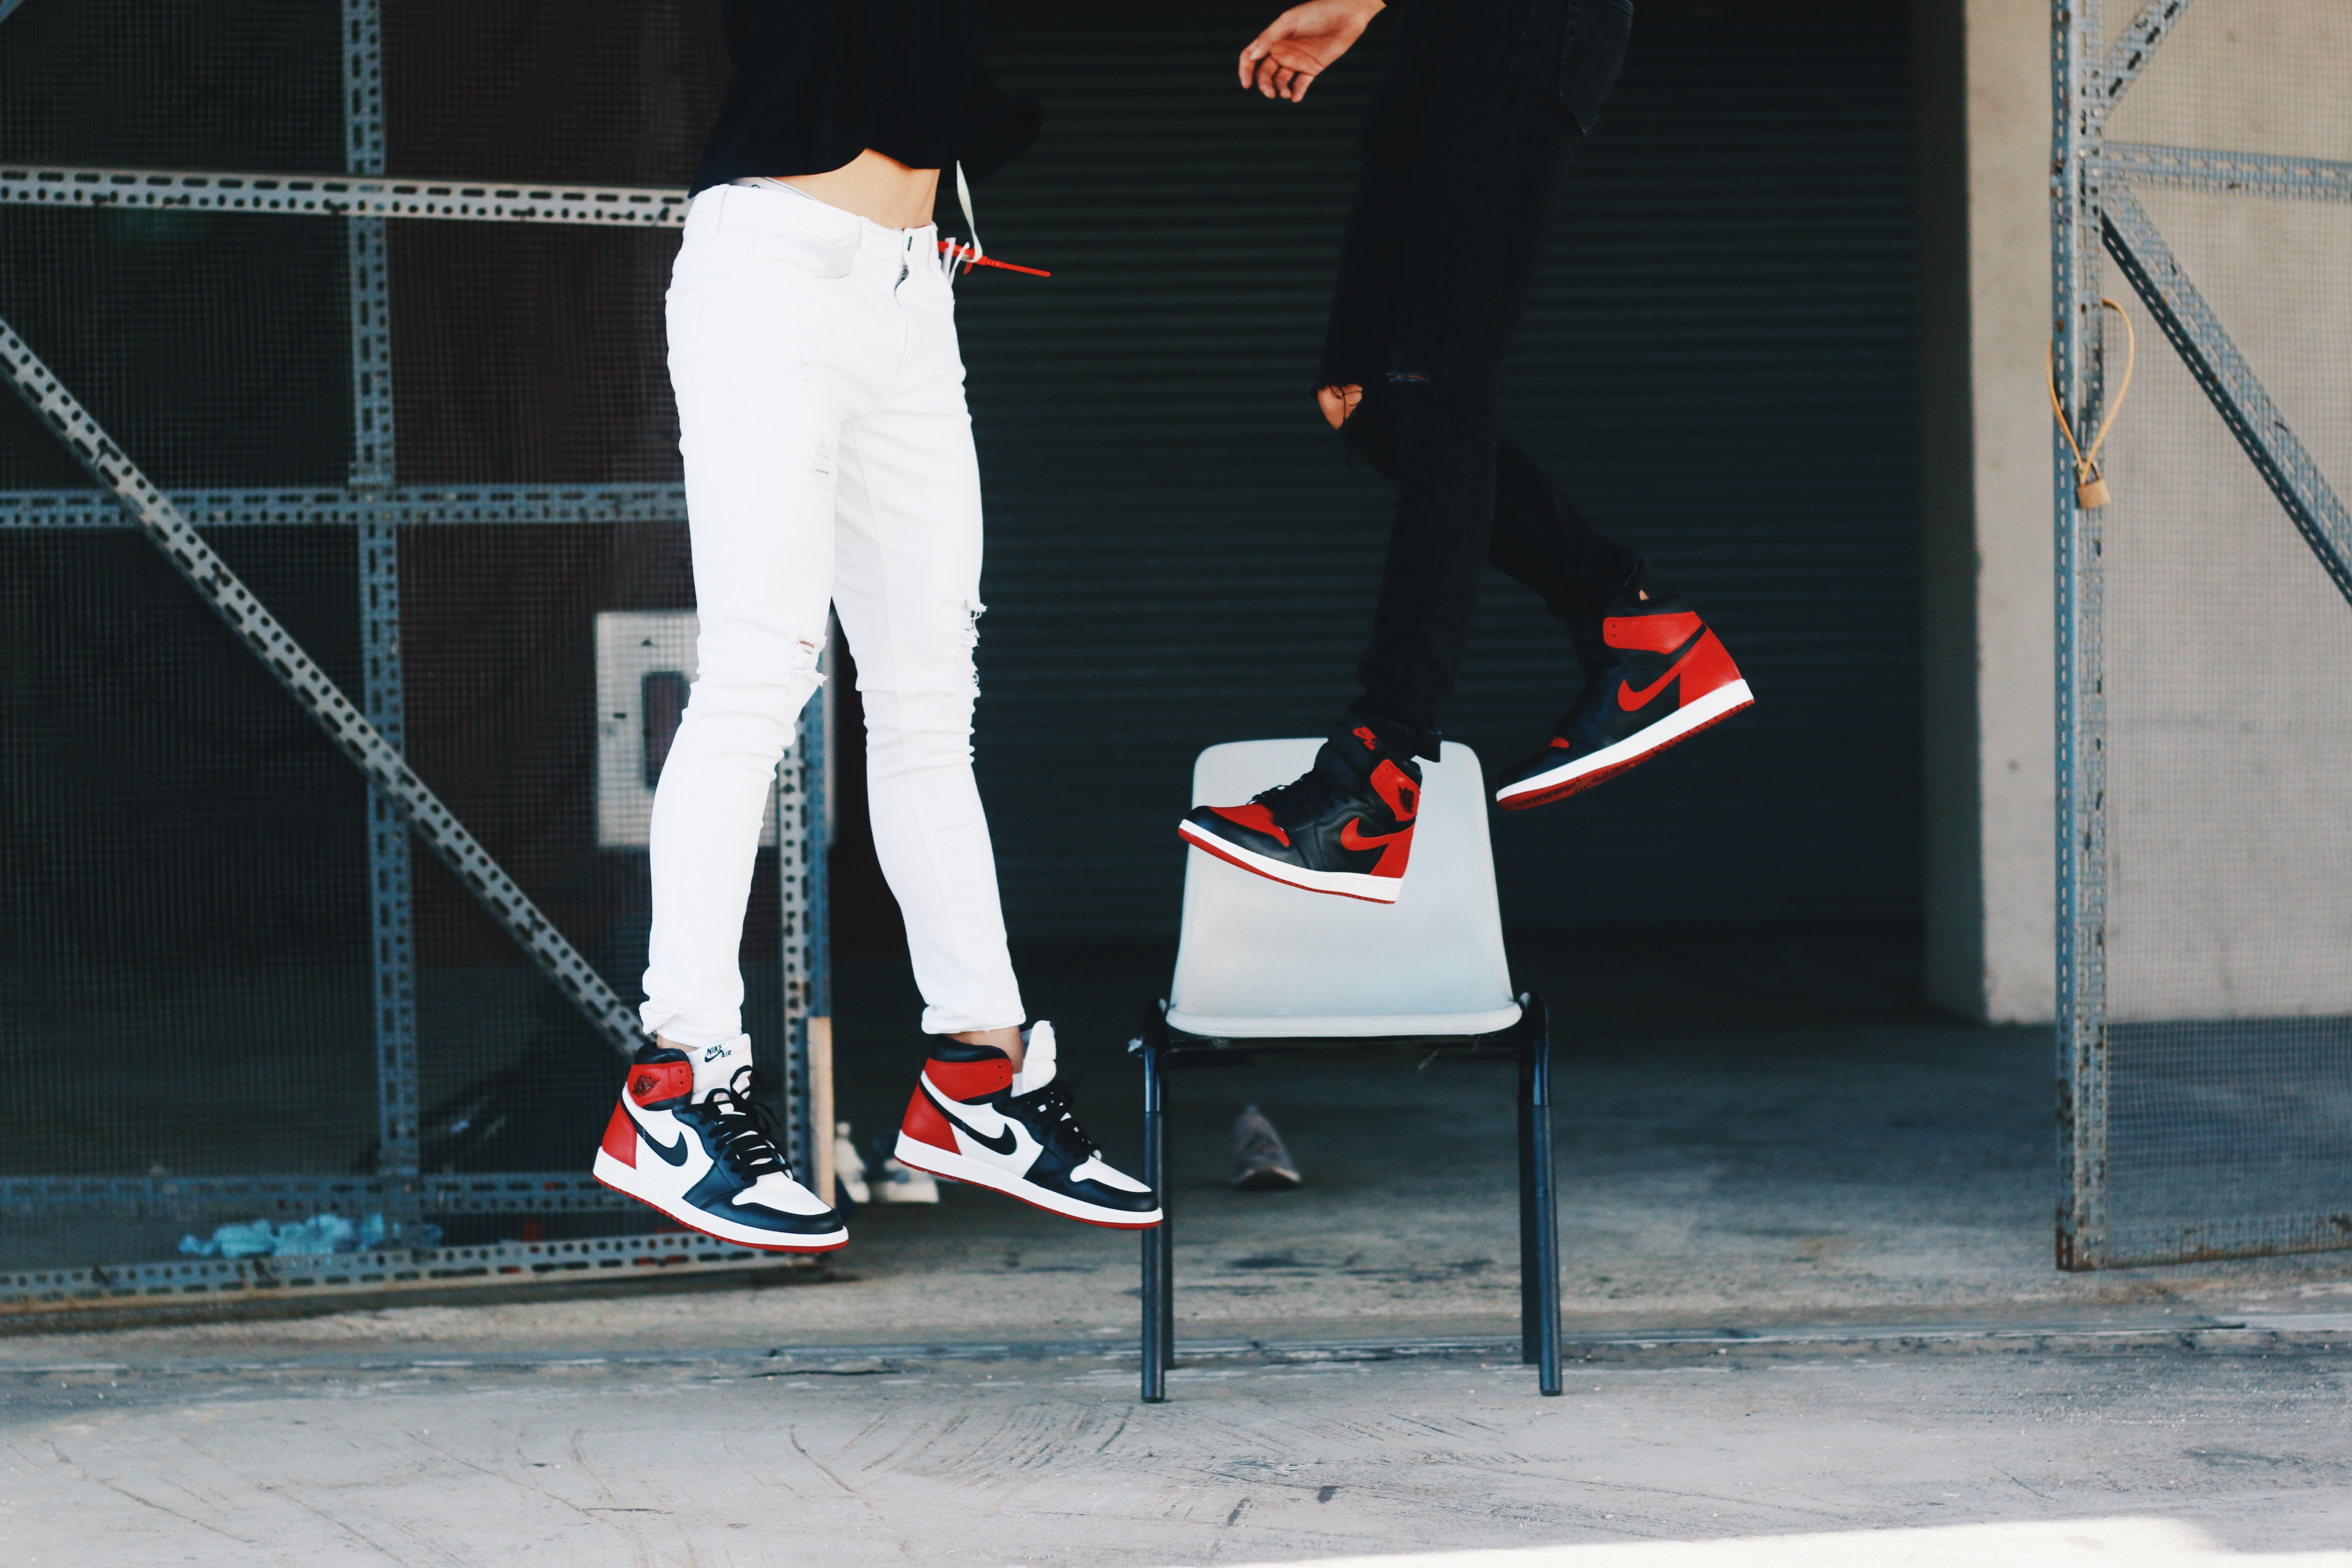 Two people are floating in mid-air wearing Nike sports shoes.